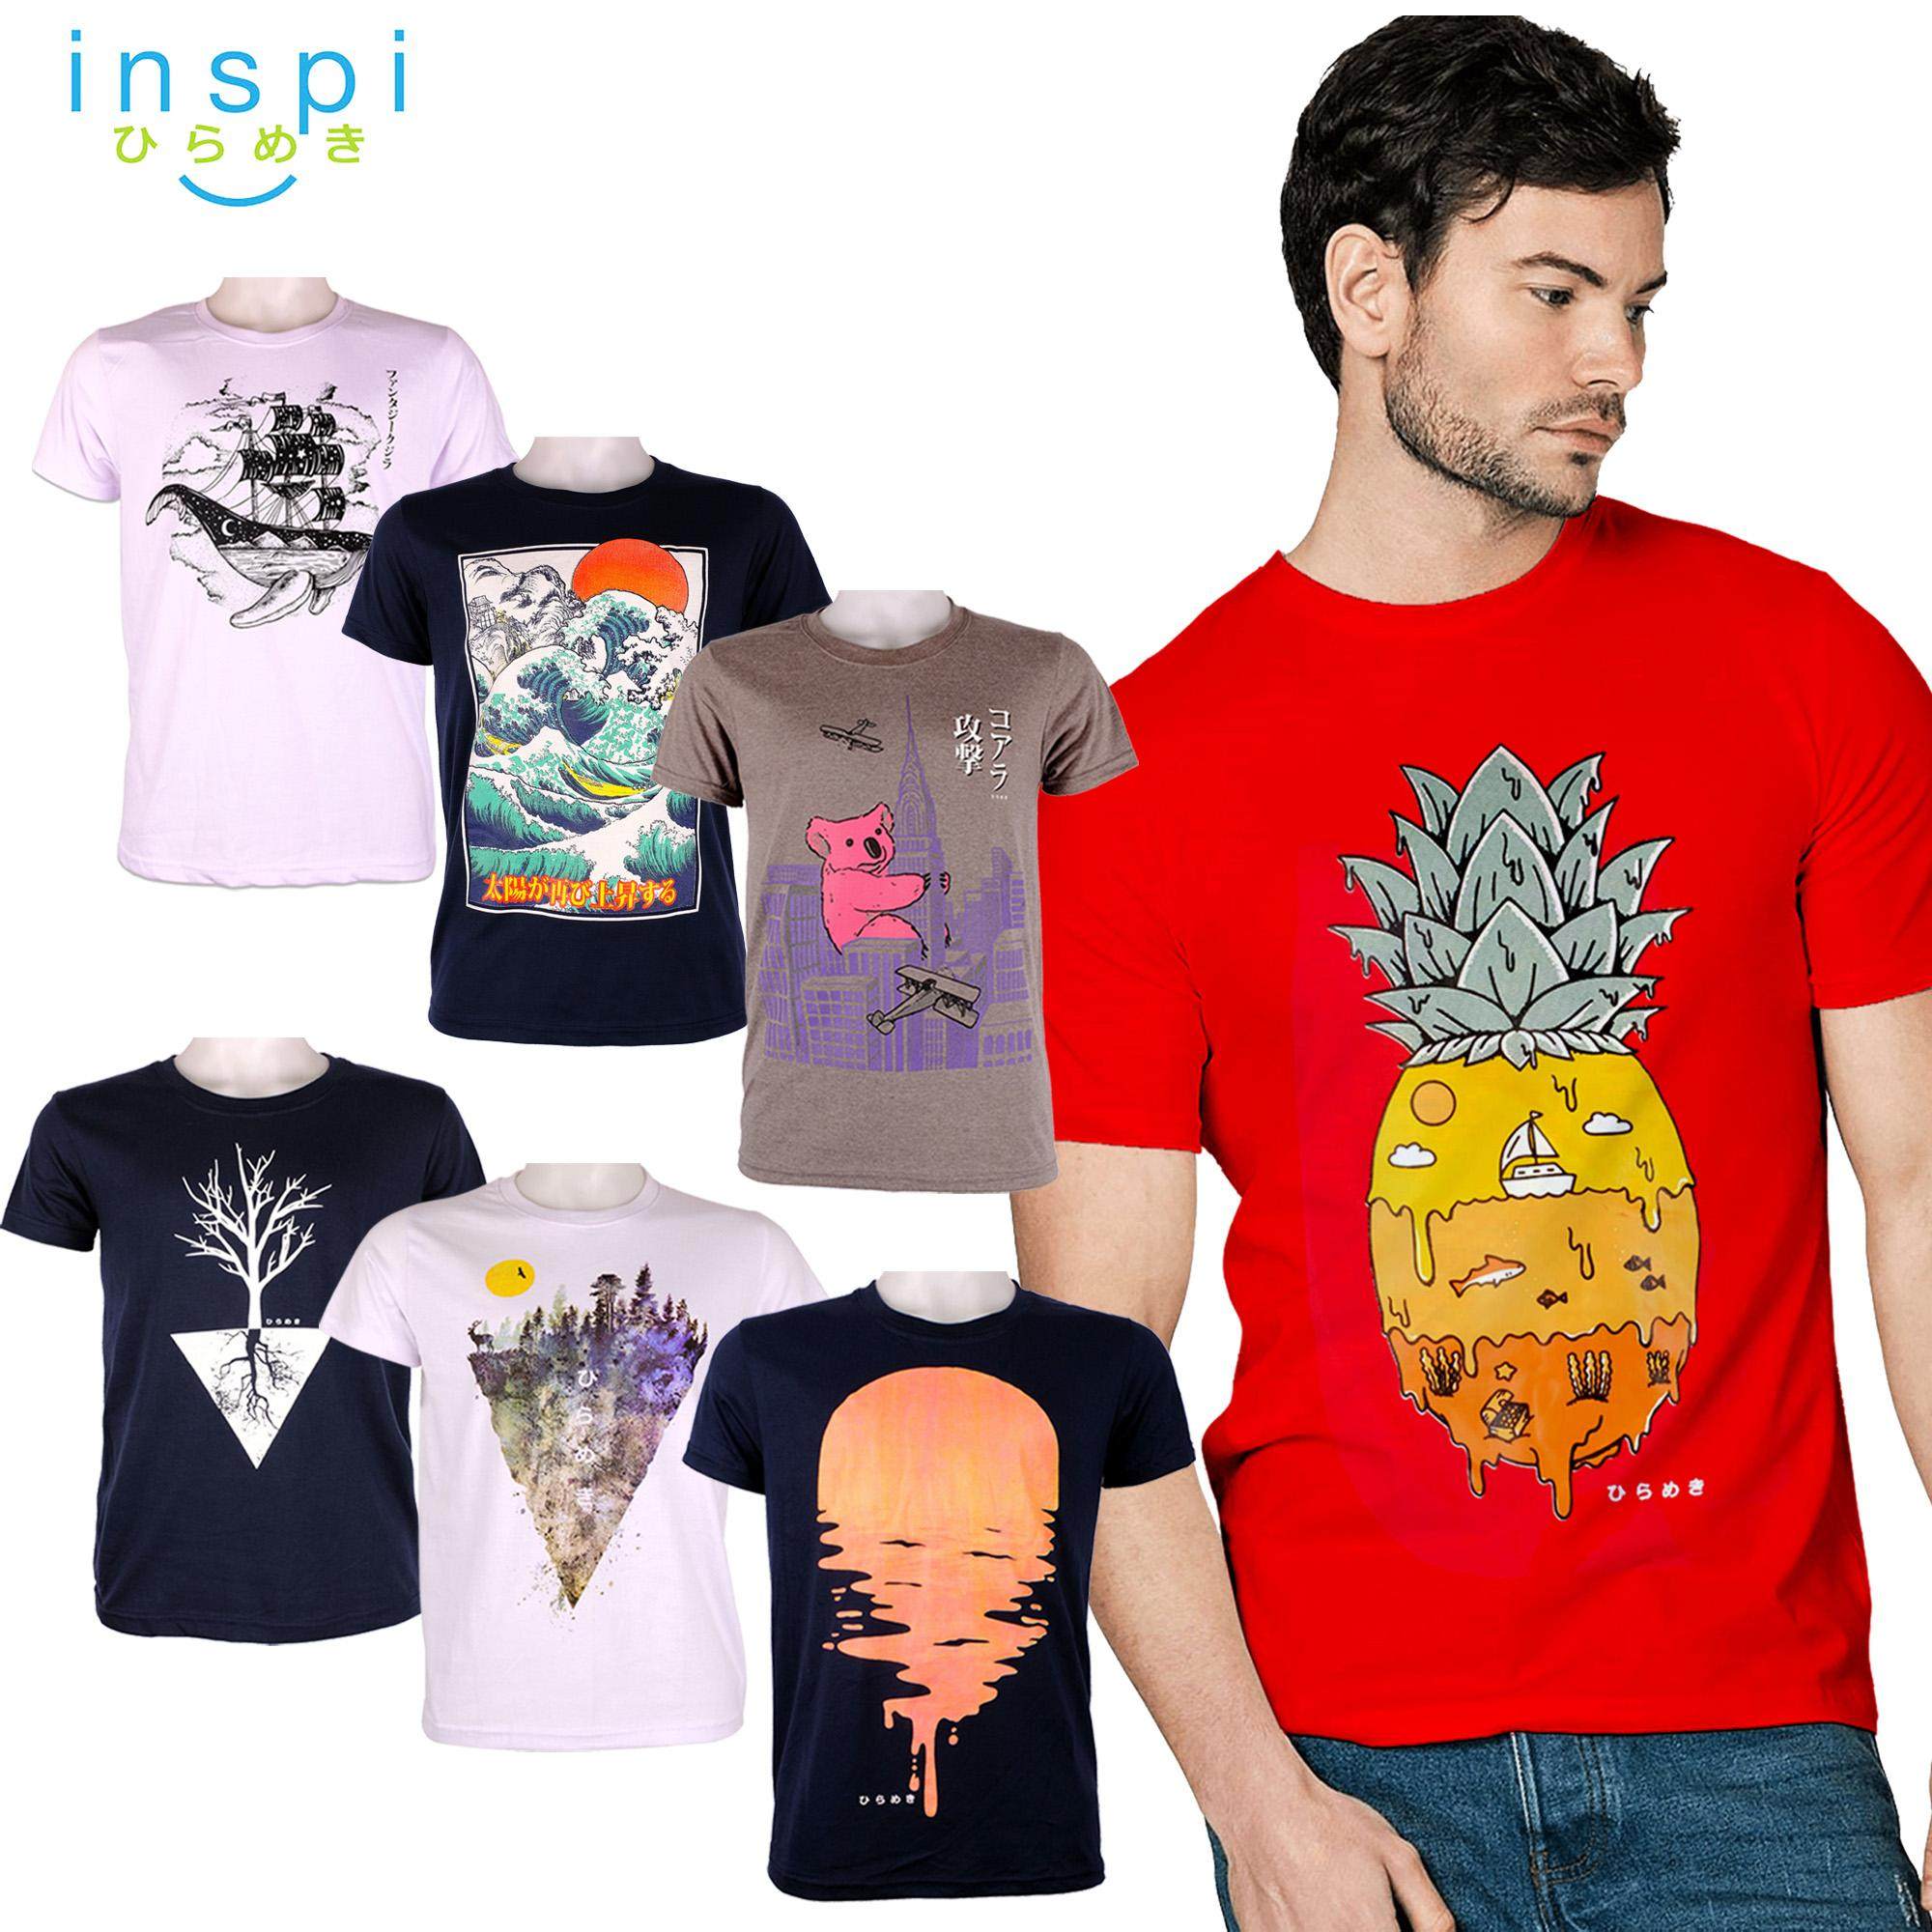 55f40af1 INSPI Tees Nature Collection tshirt printed graphic tee Mens t shirt shirts  for men tshirts sale